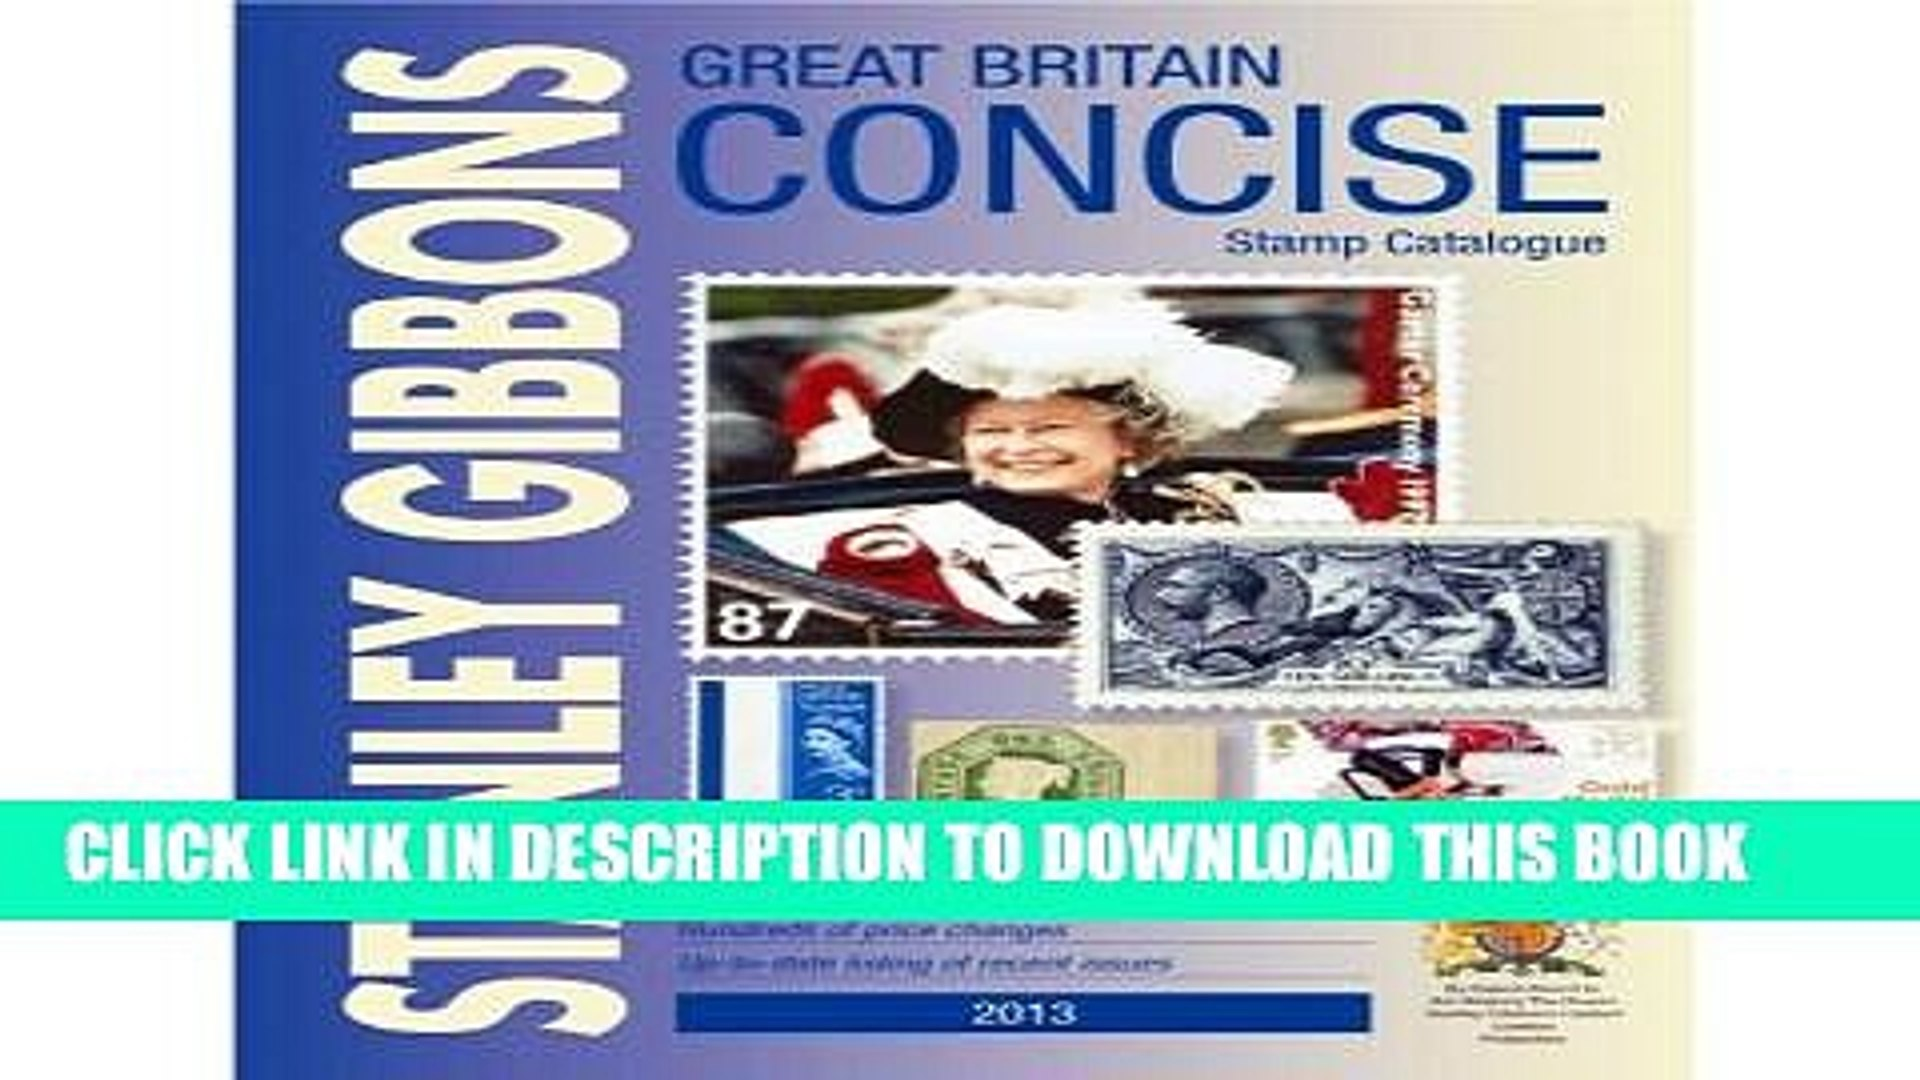 New Book Great Britain Concise 2013 2013: GB Concise: Stanley Gibbons Stamp Catalogue: 2013